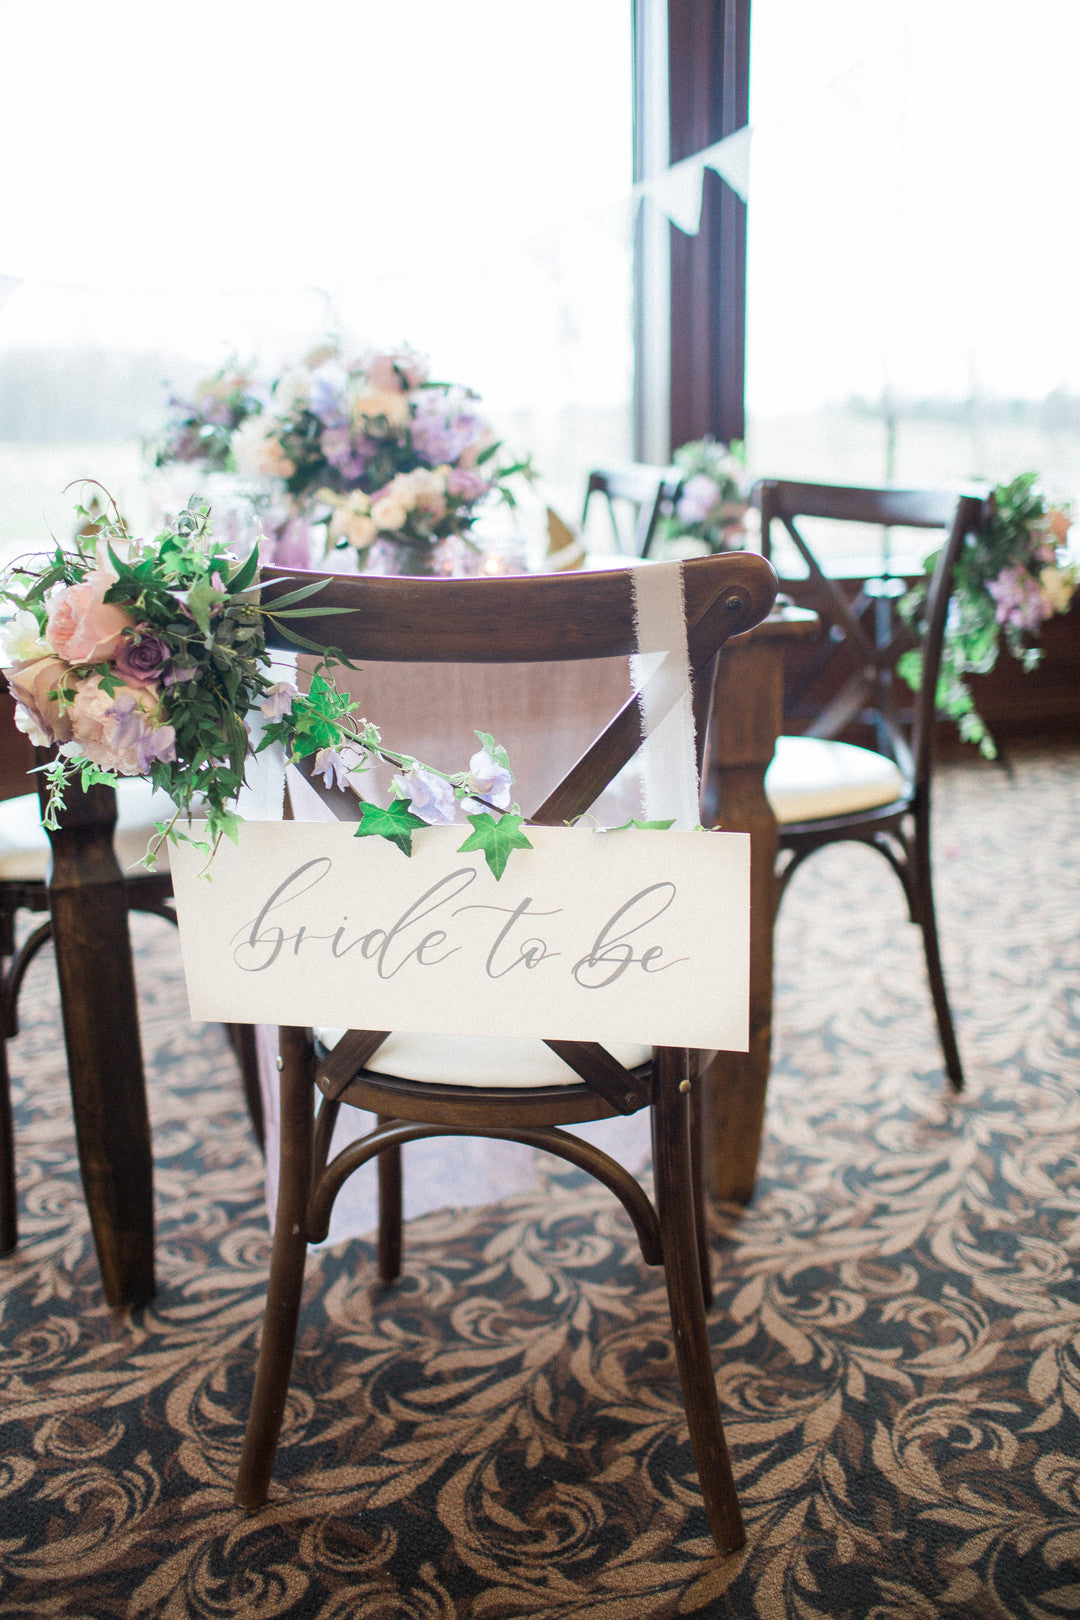 Bride To Be Seat | Tips For the Perfect Floral Bridal Shower | Kate Aspen